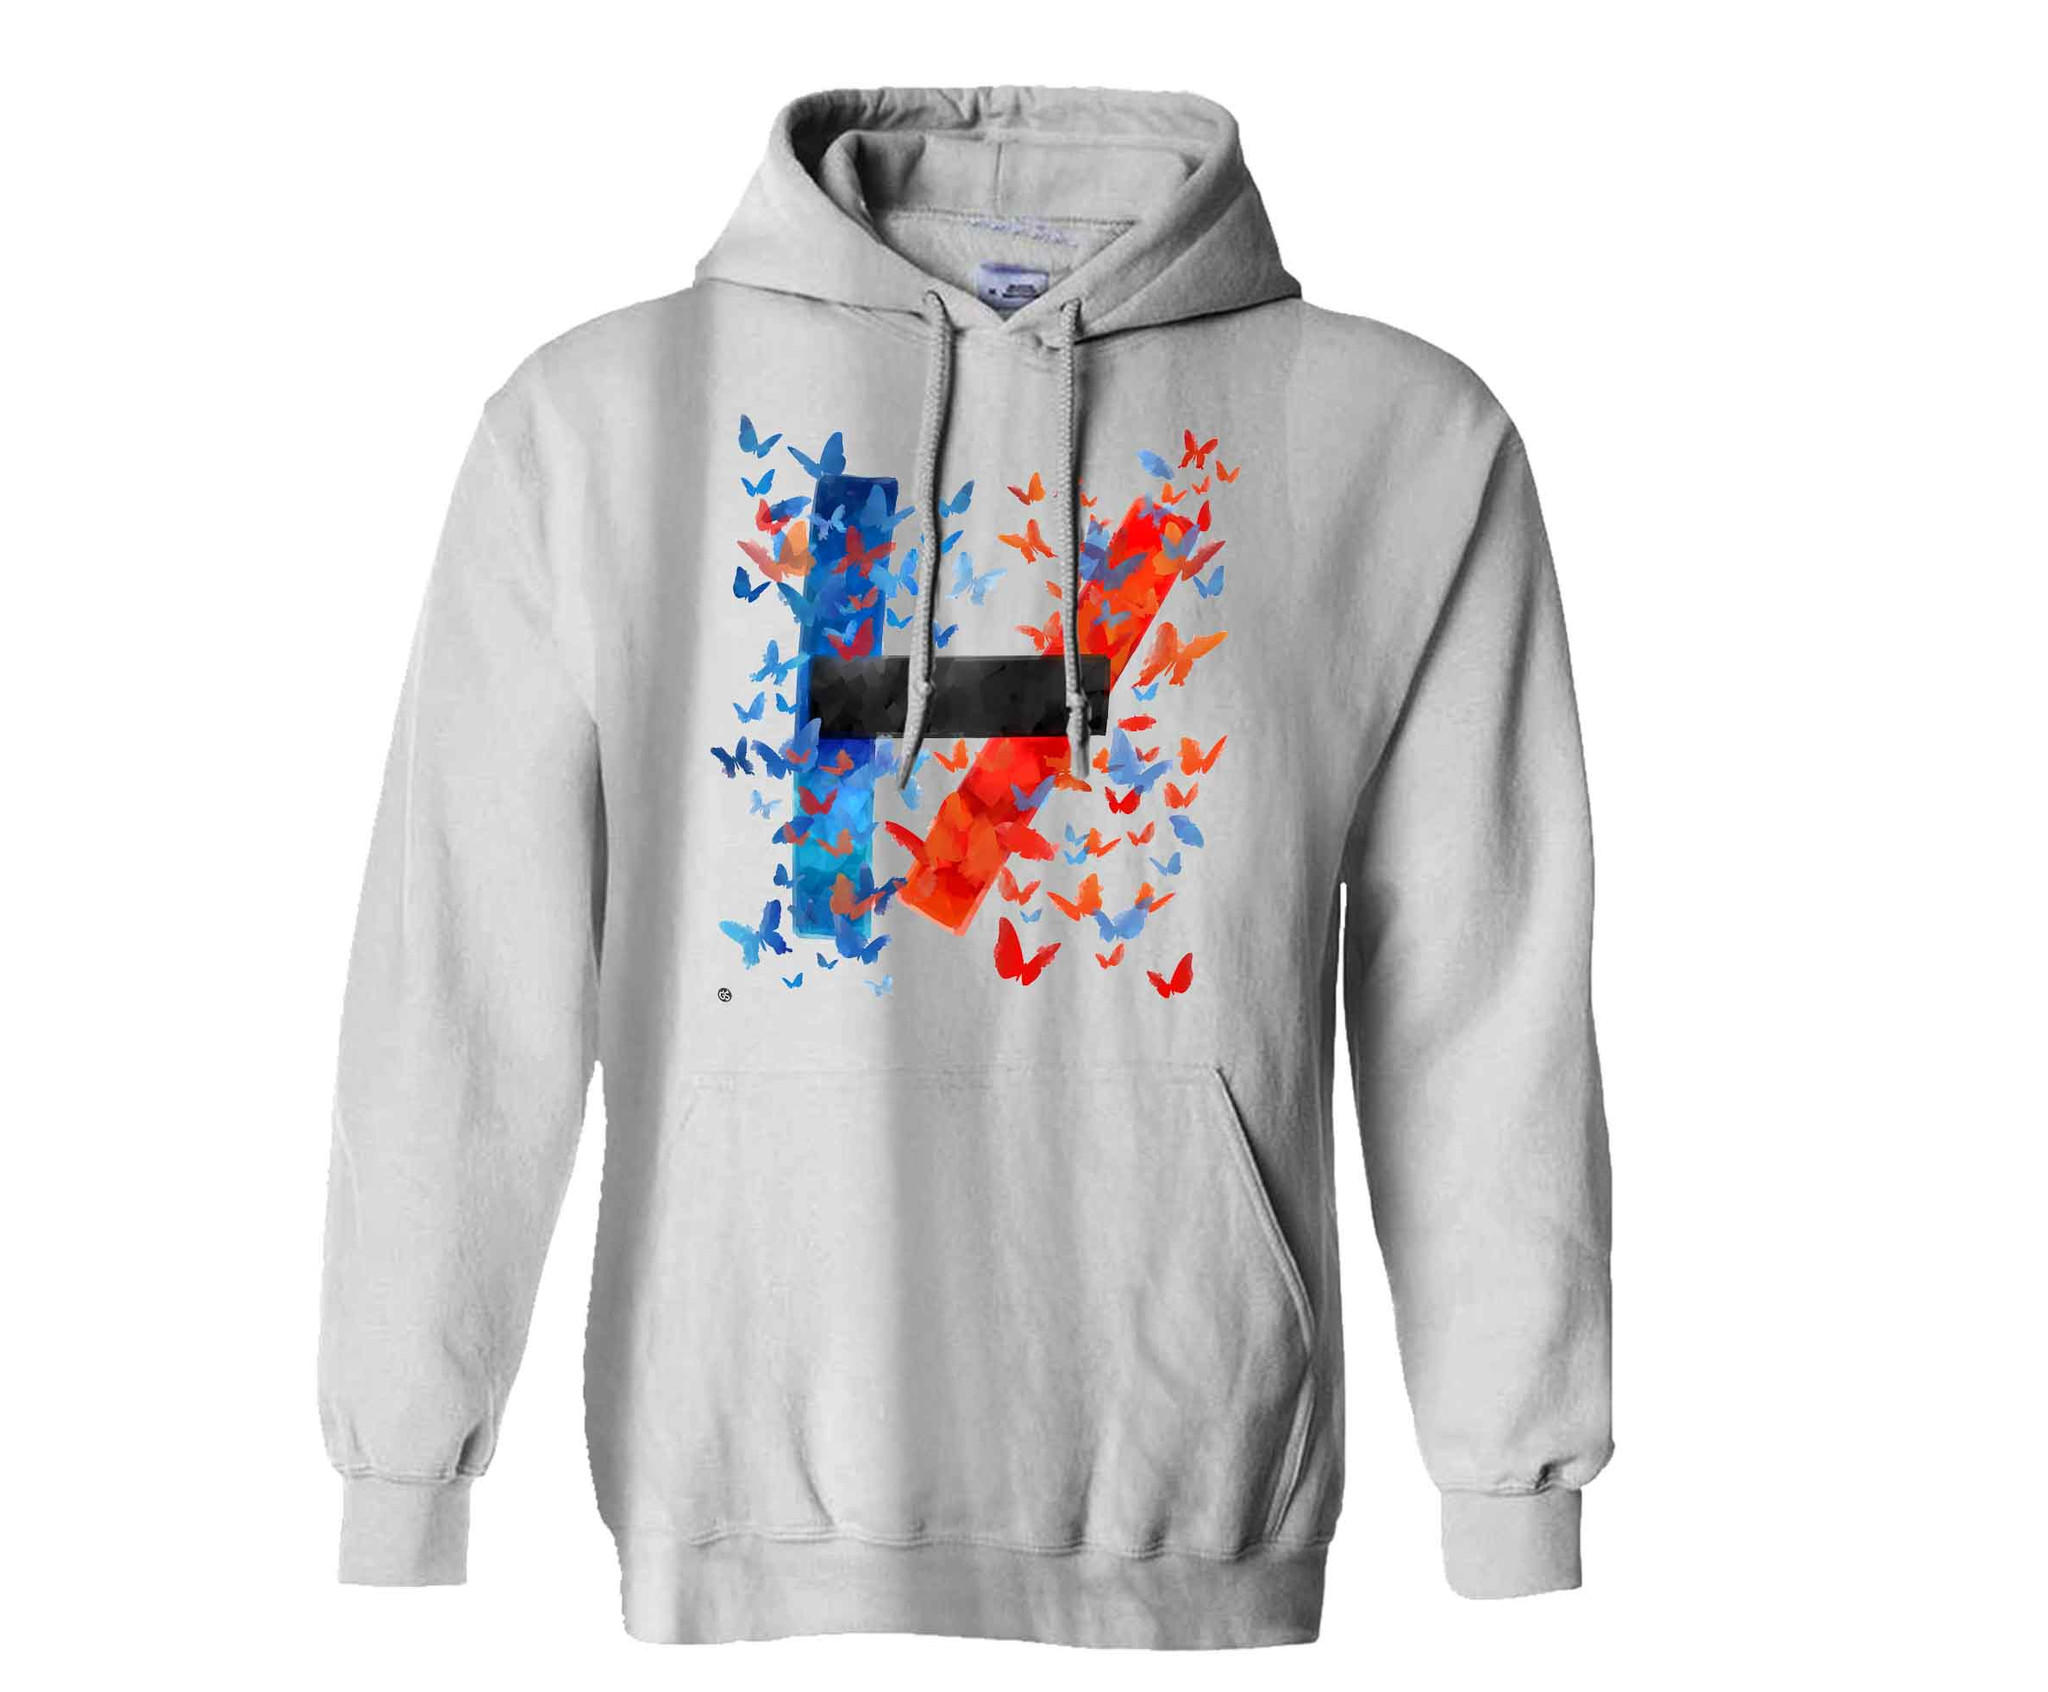 twenty one pilots logo design hoodie for from. Black Bedroom Furniture Sets. Home Design Ideas